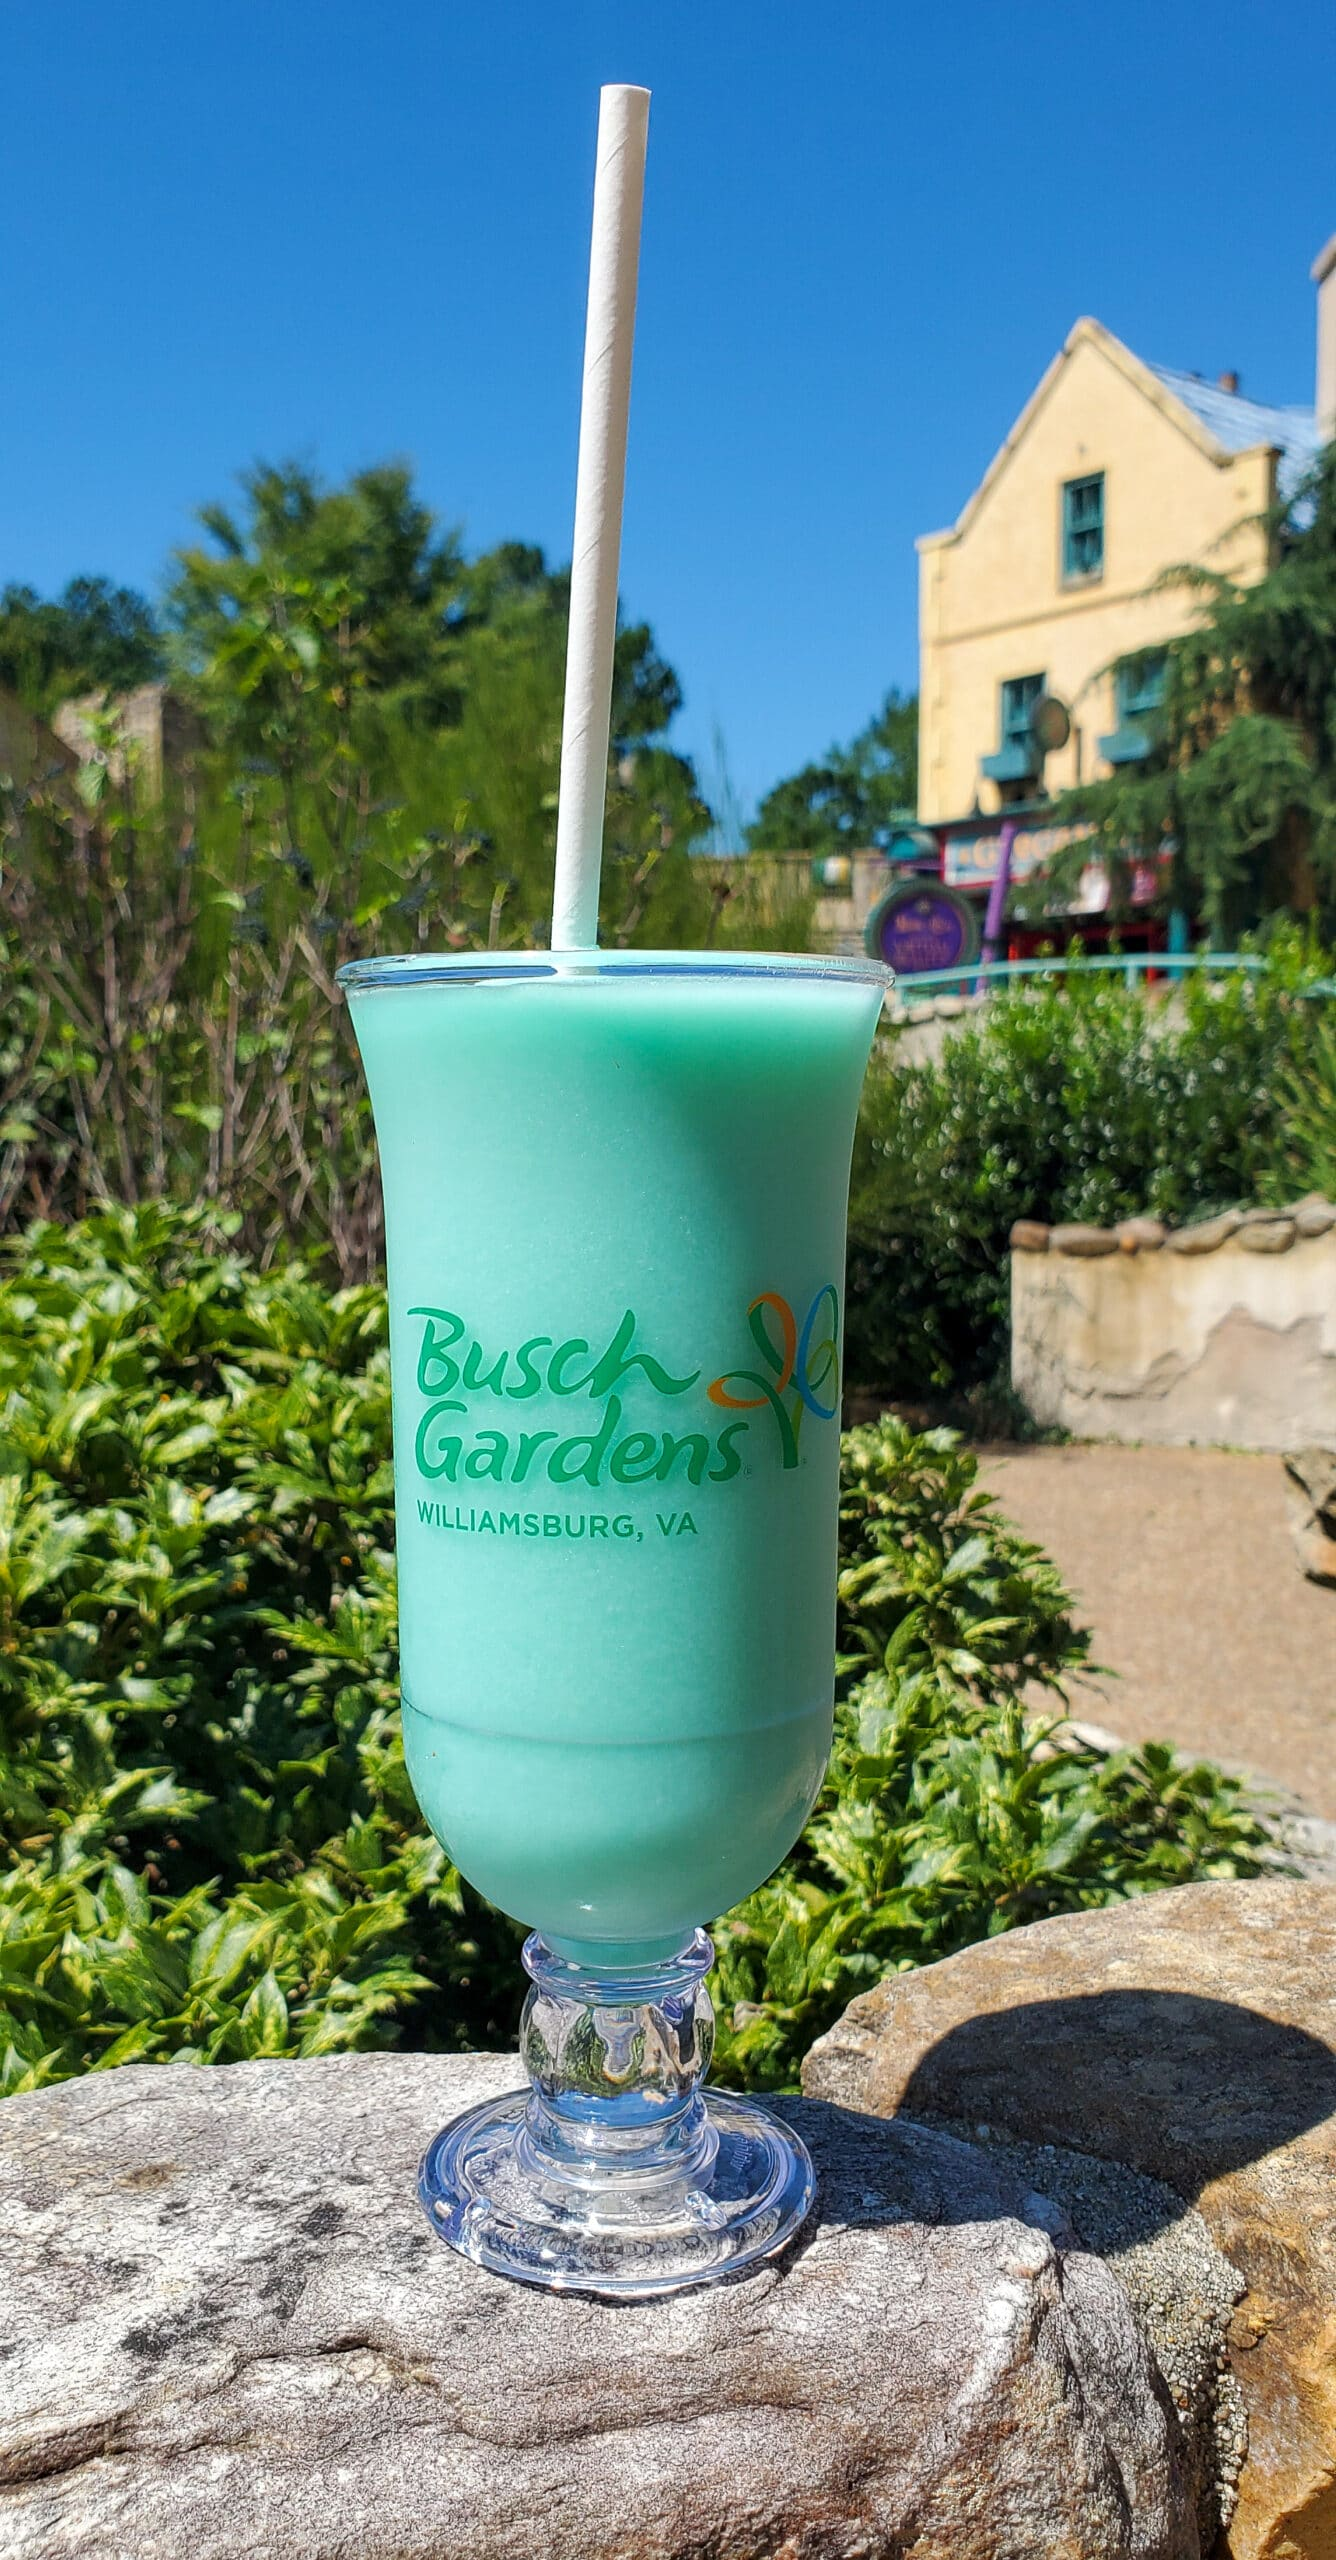 Taste of Busch Gardens Specialty Drink. Sip, sample, and soar at this limited-capacity during the Taste of Busch Gardens special event in Williamsburg, VA. Select areas of the park will be open so there is plenty of room to safely enjoy specialty food and drinks as you stroll through our 6 charming villages.